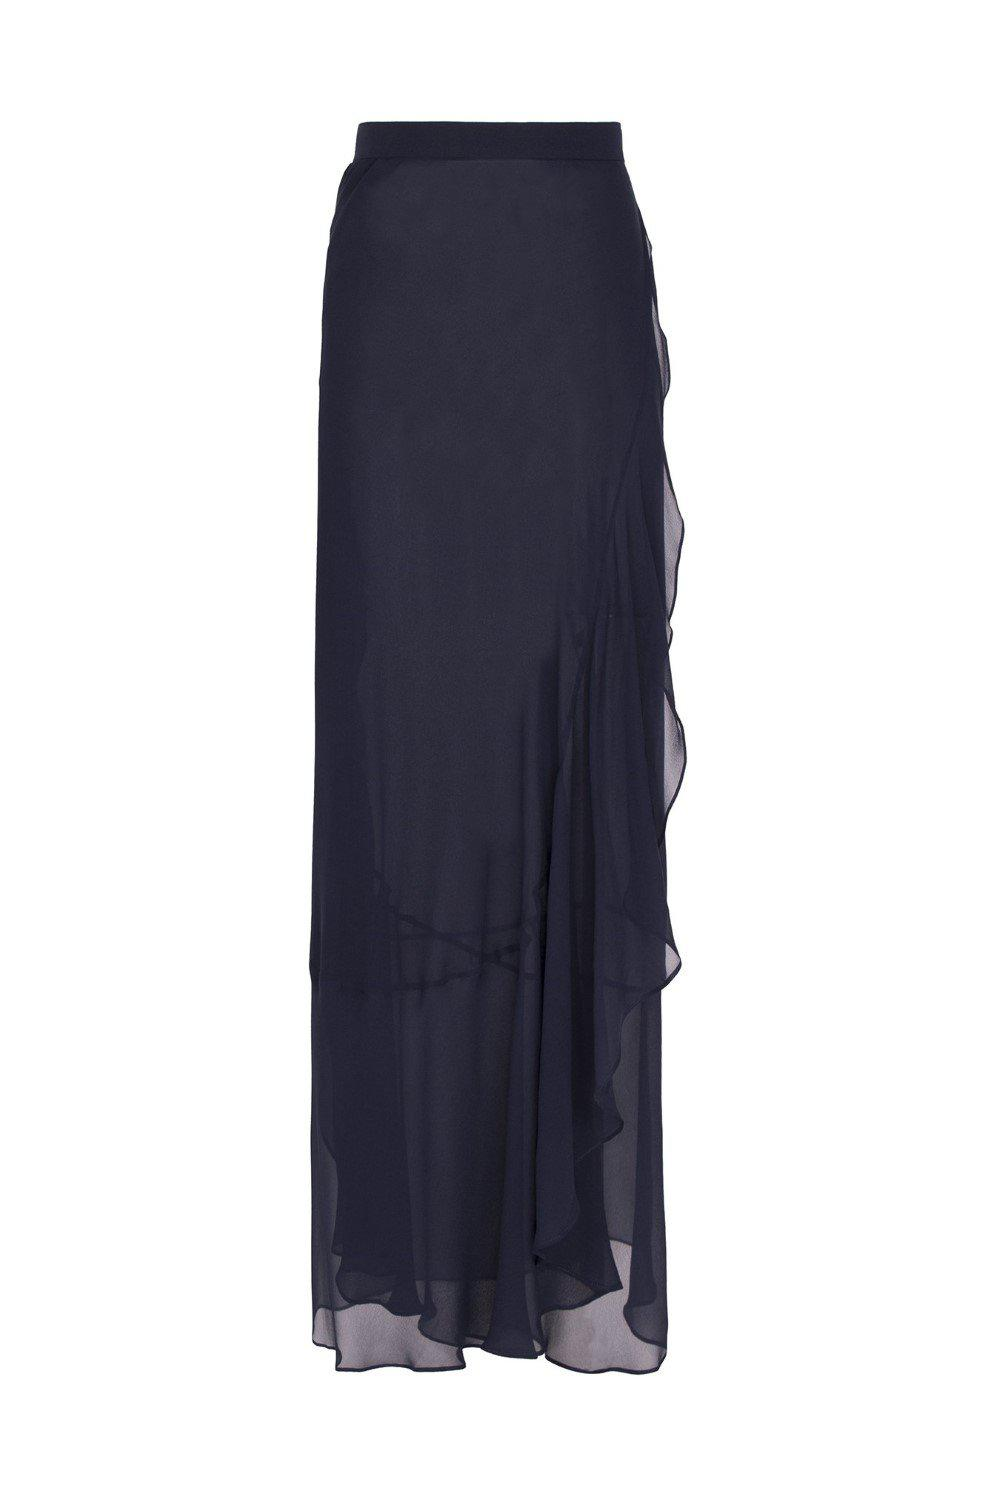 Solid Pareo Skirt